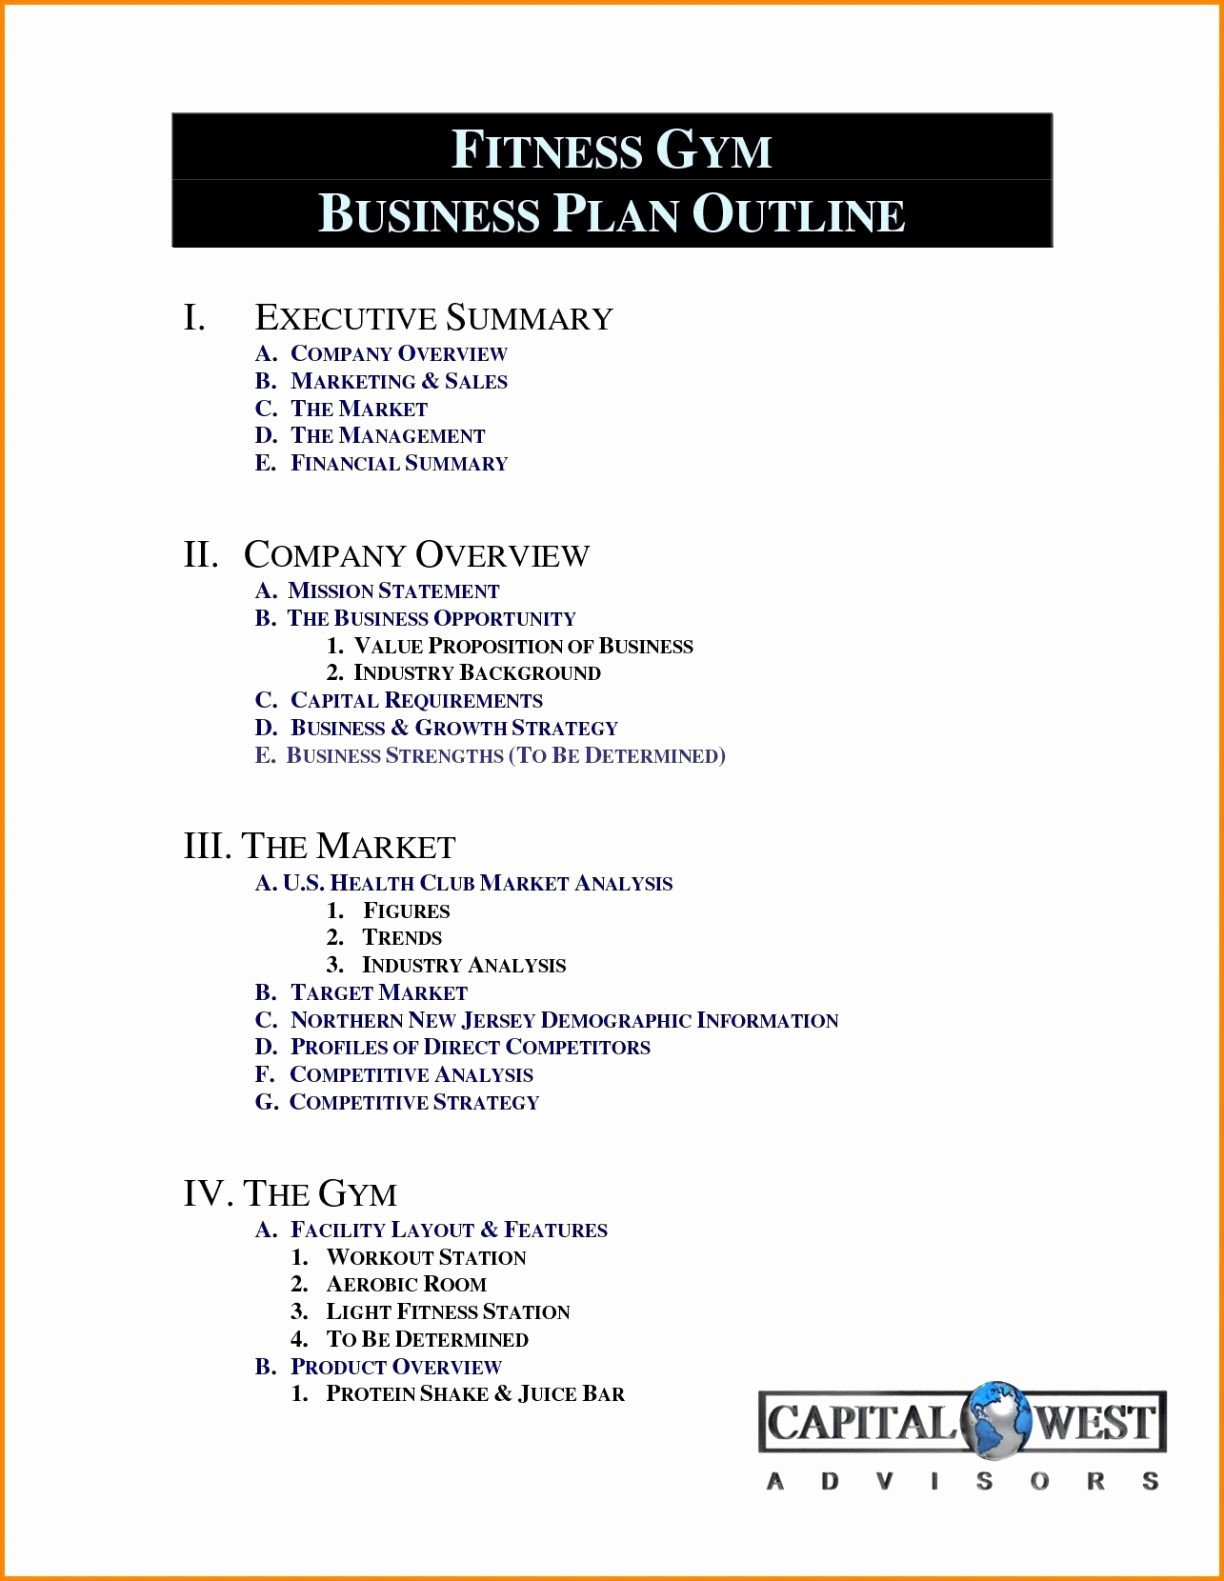 Business Plan For Gym Template Fitness Free Downloads New Throughout Business Plan Template For A Gym